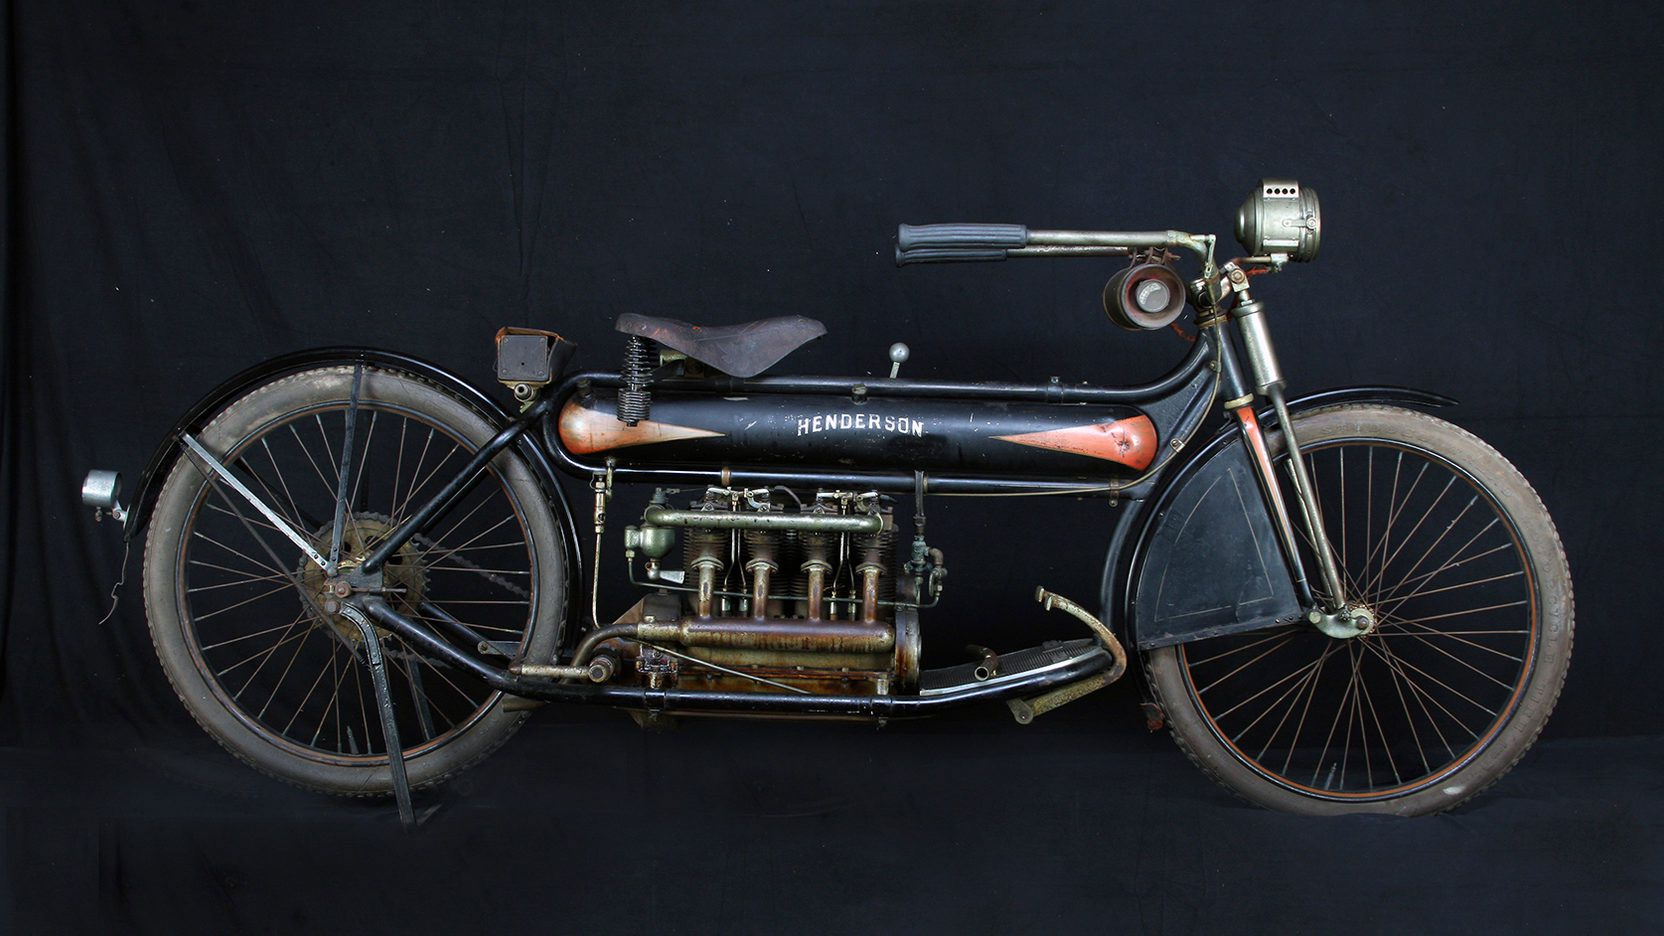 10. This original paint American-made 1912 Henderson four made $490,000 at auction in 2017.